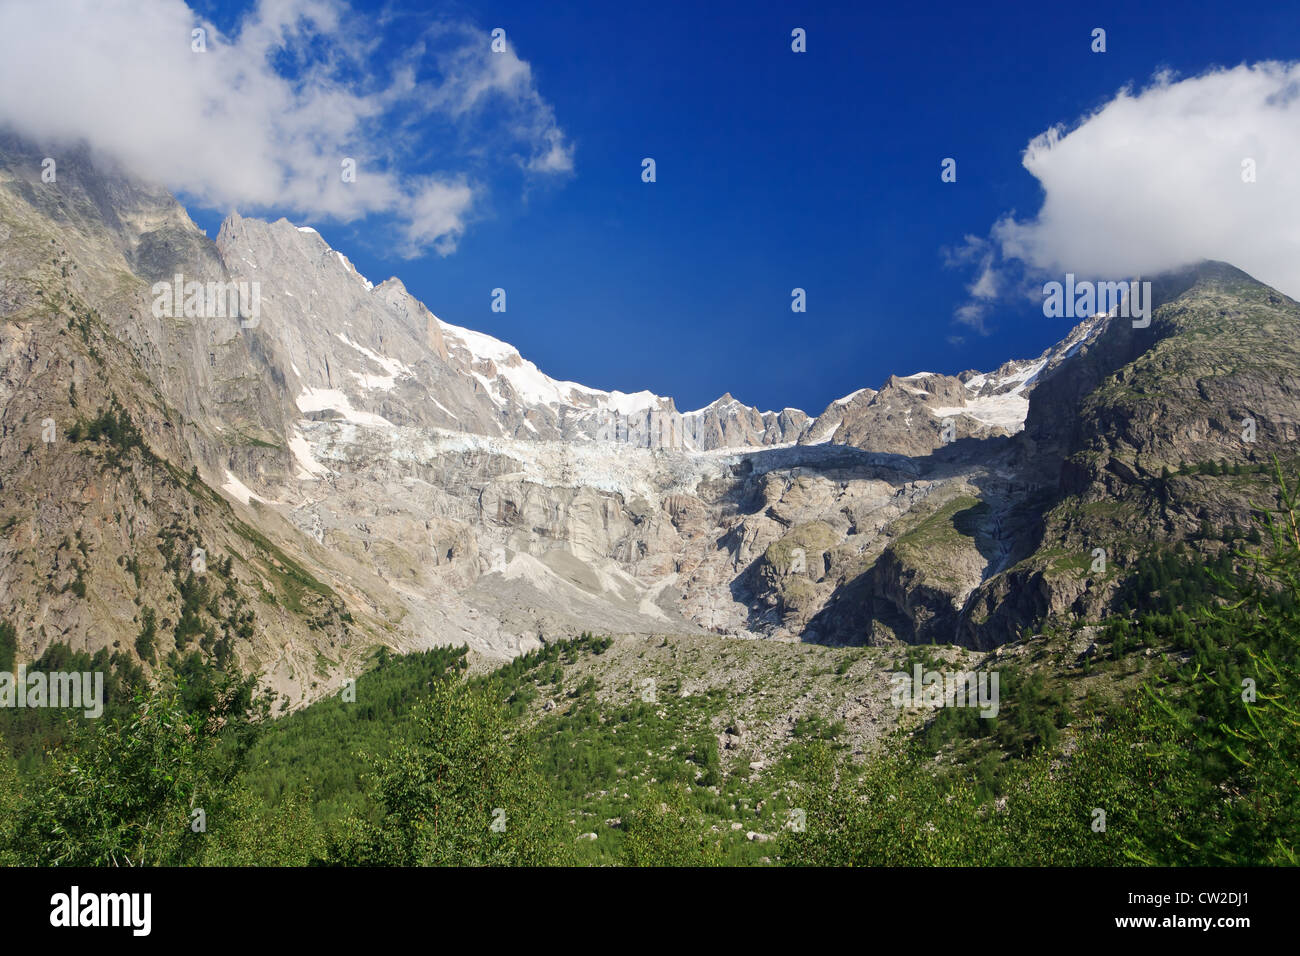 summer view of Miage glacier in Mont Blanc massif, Courmayeur, Italy - Stock Image